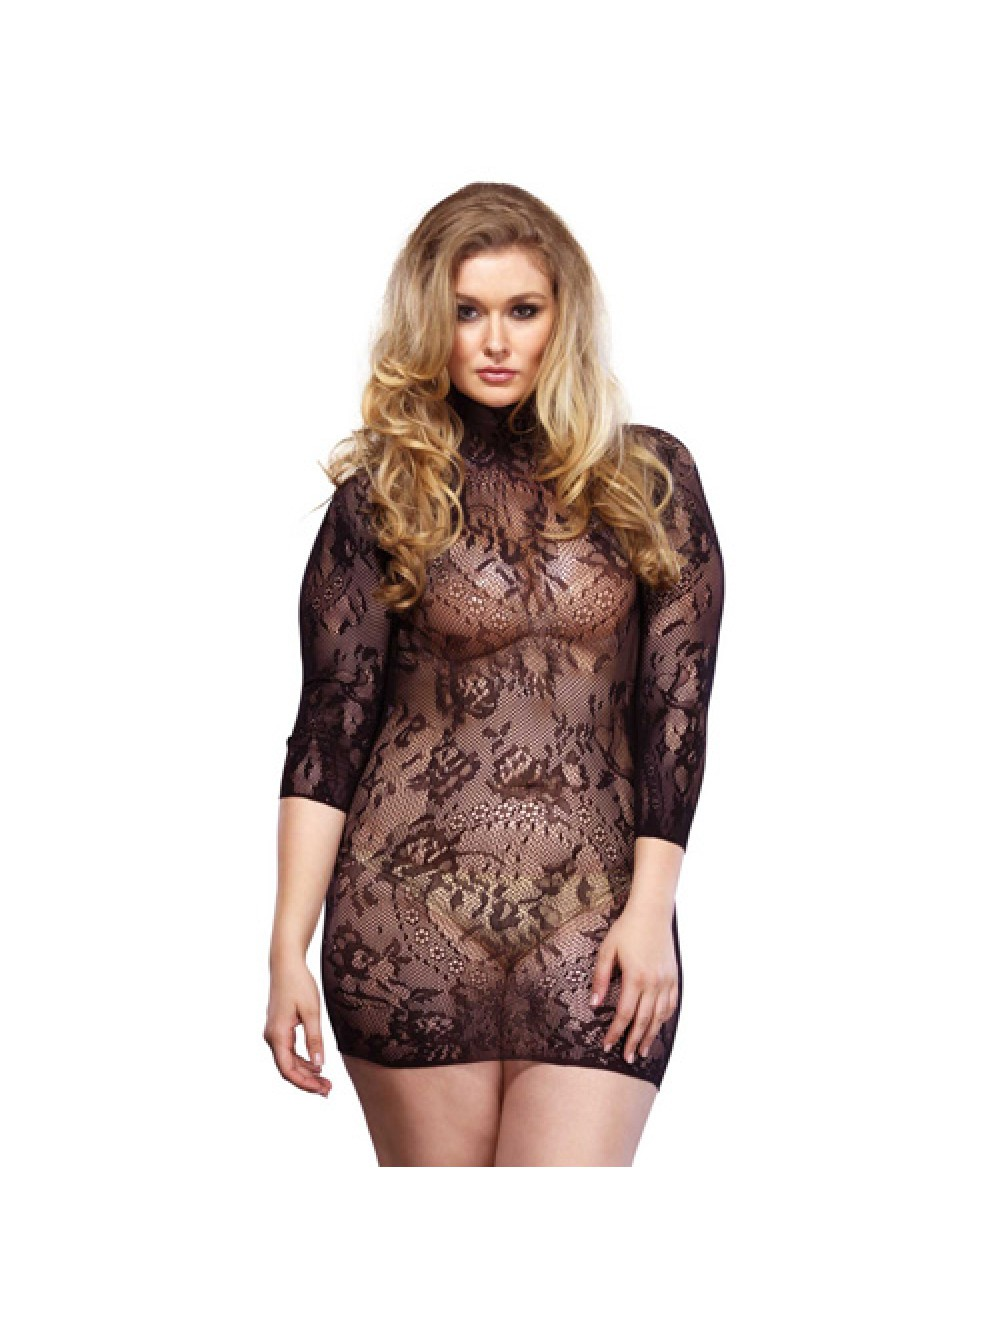 Leg Avenue pizzo floreale Mini Dress UK da 16 a 18